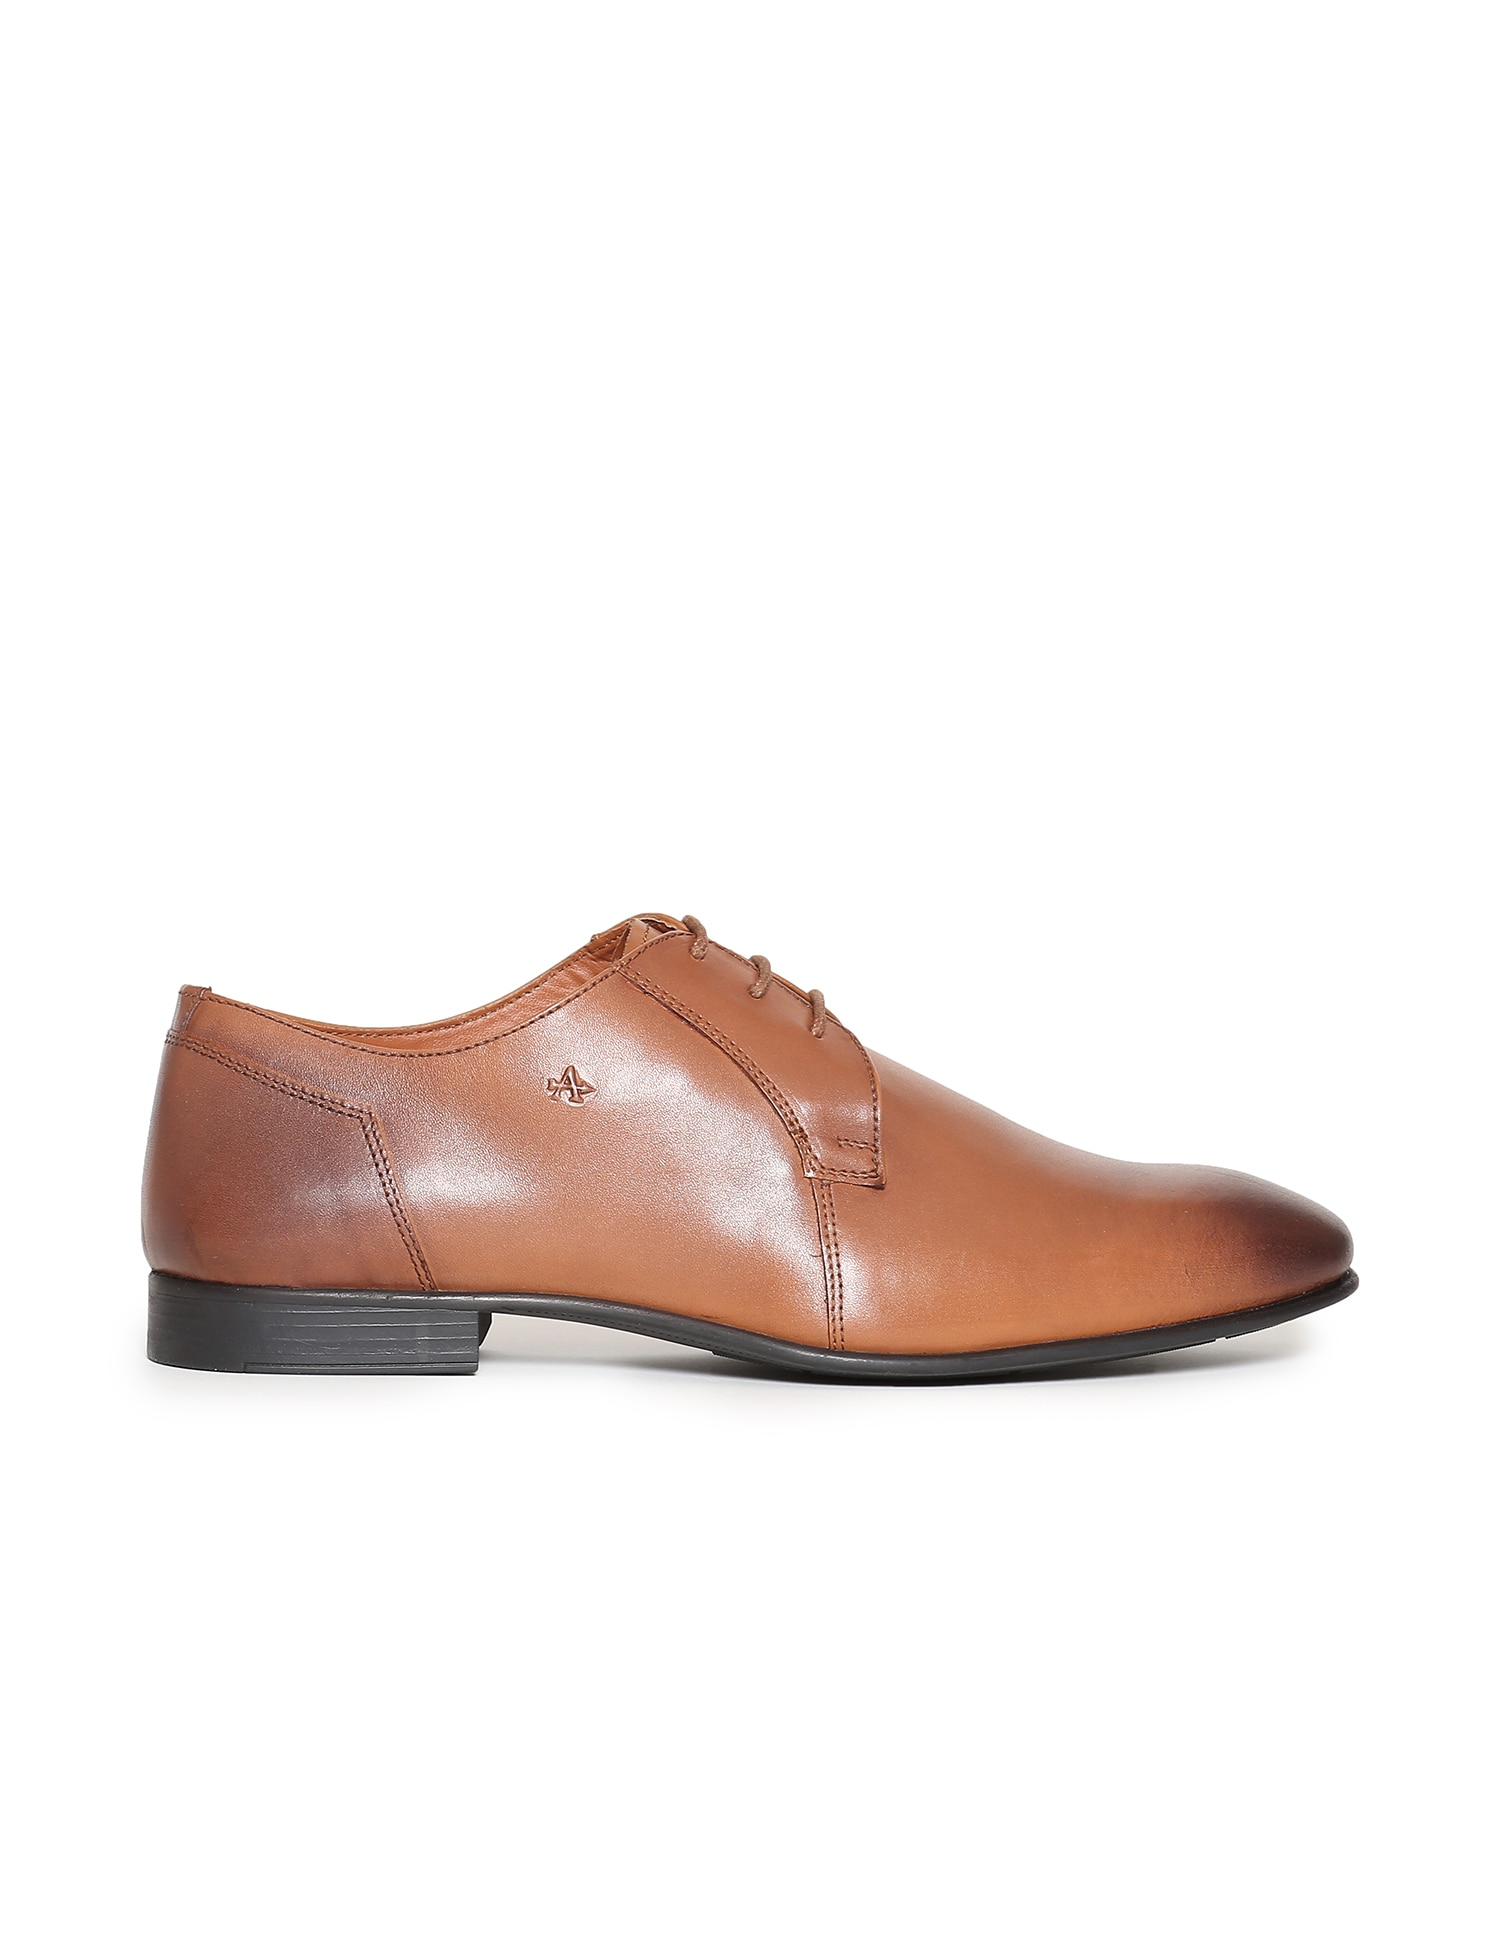 Arrow Kenny Tan Formal Shoes for Men online in India at Best price ... b432fe7d008